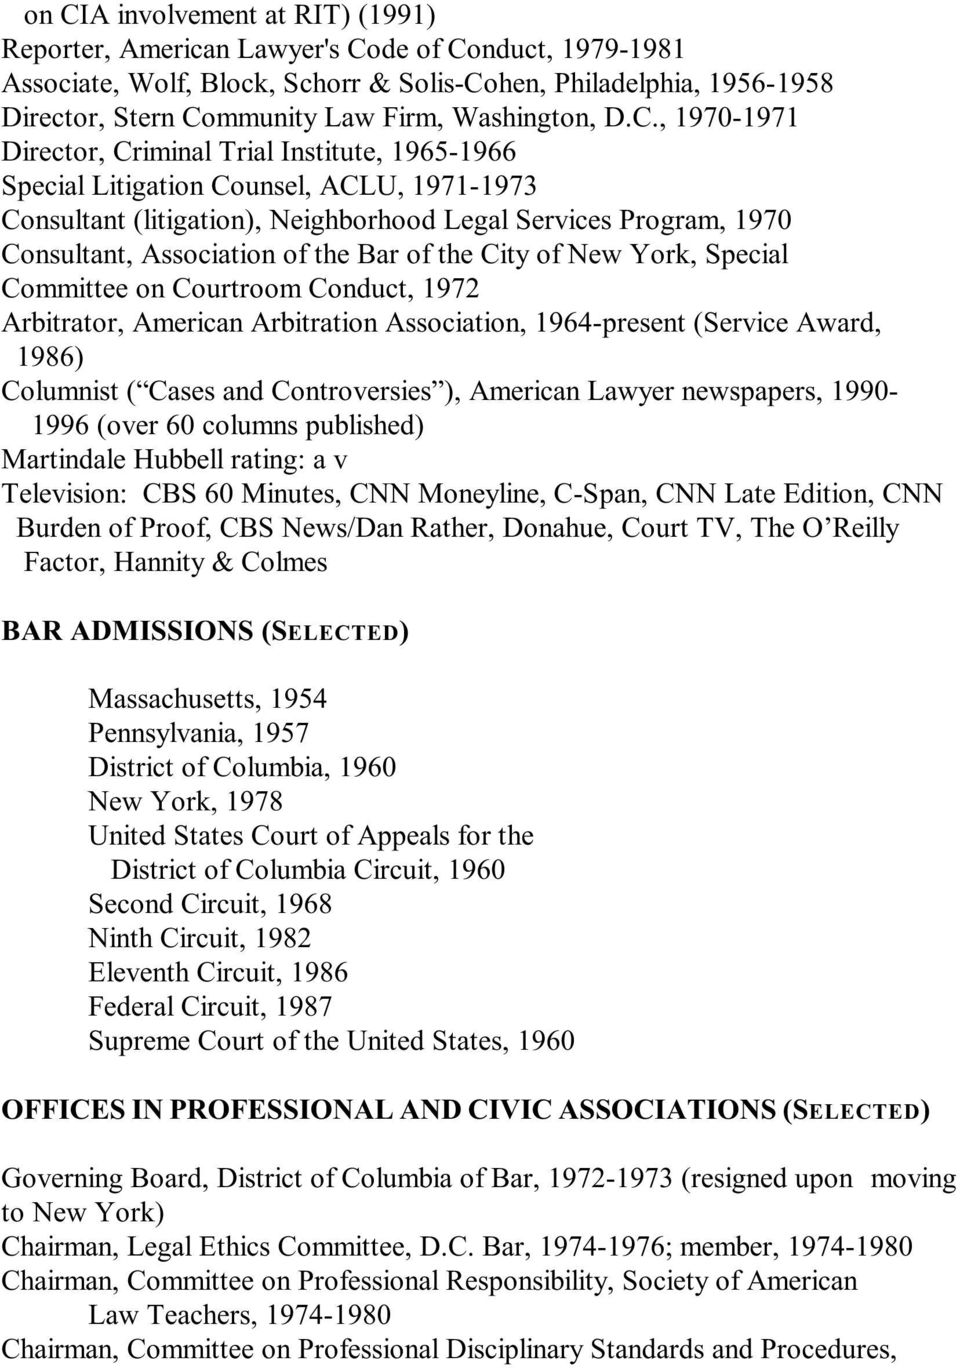 , 1970-1971 Director, Criminal Trial Institute, 1965-1966 Special Litigation Counsel, ACLU, 1971-1973 Consultant (litigation), Neighborhood Legal Services Program, 1970 Consultant, Association of the